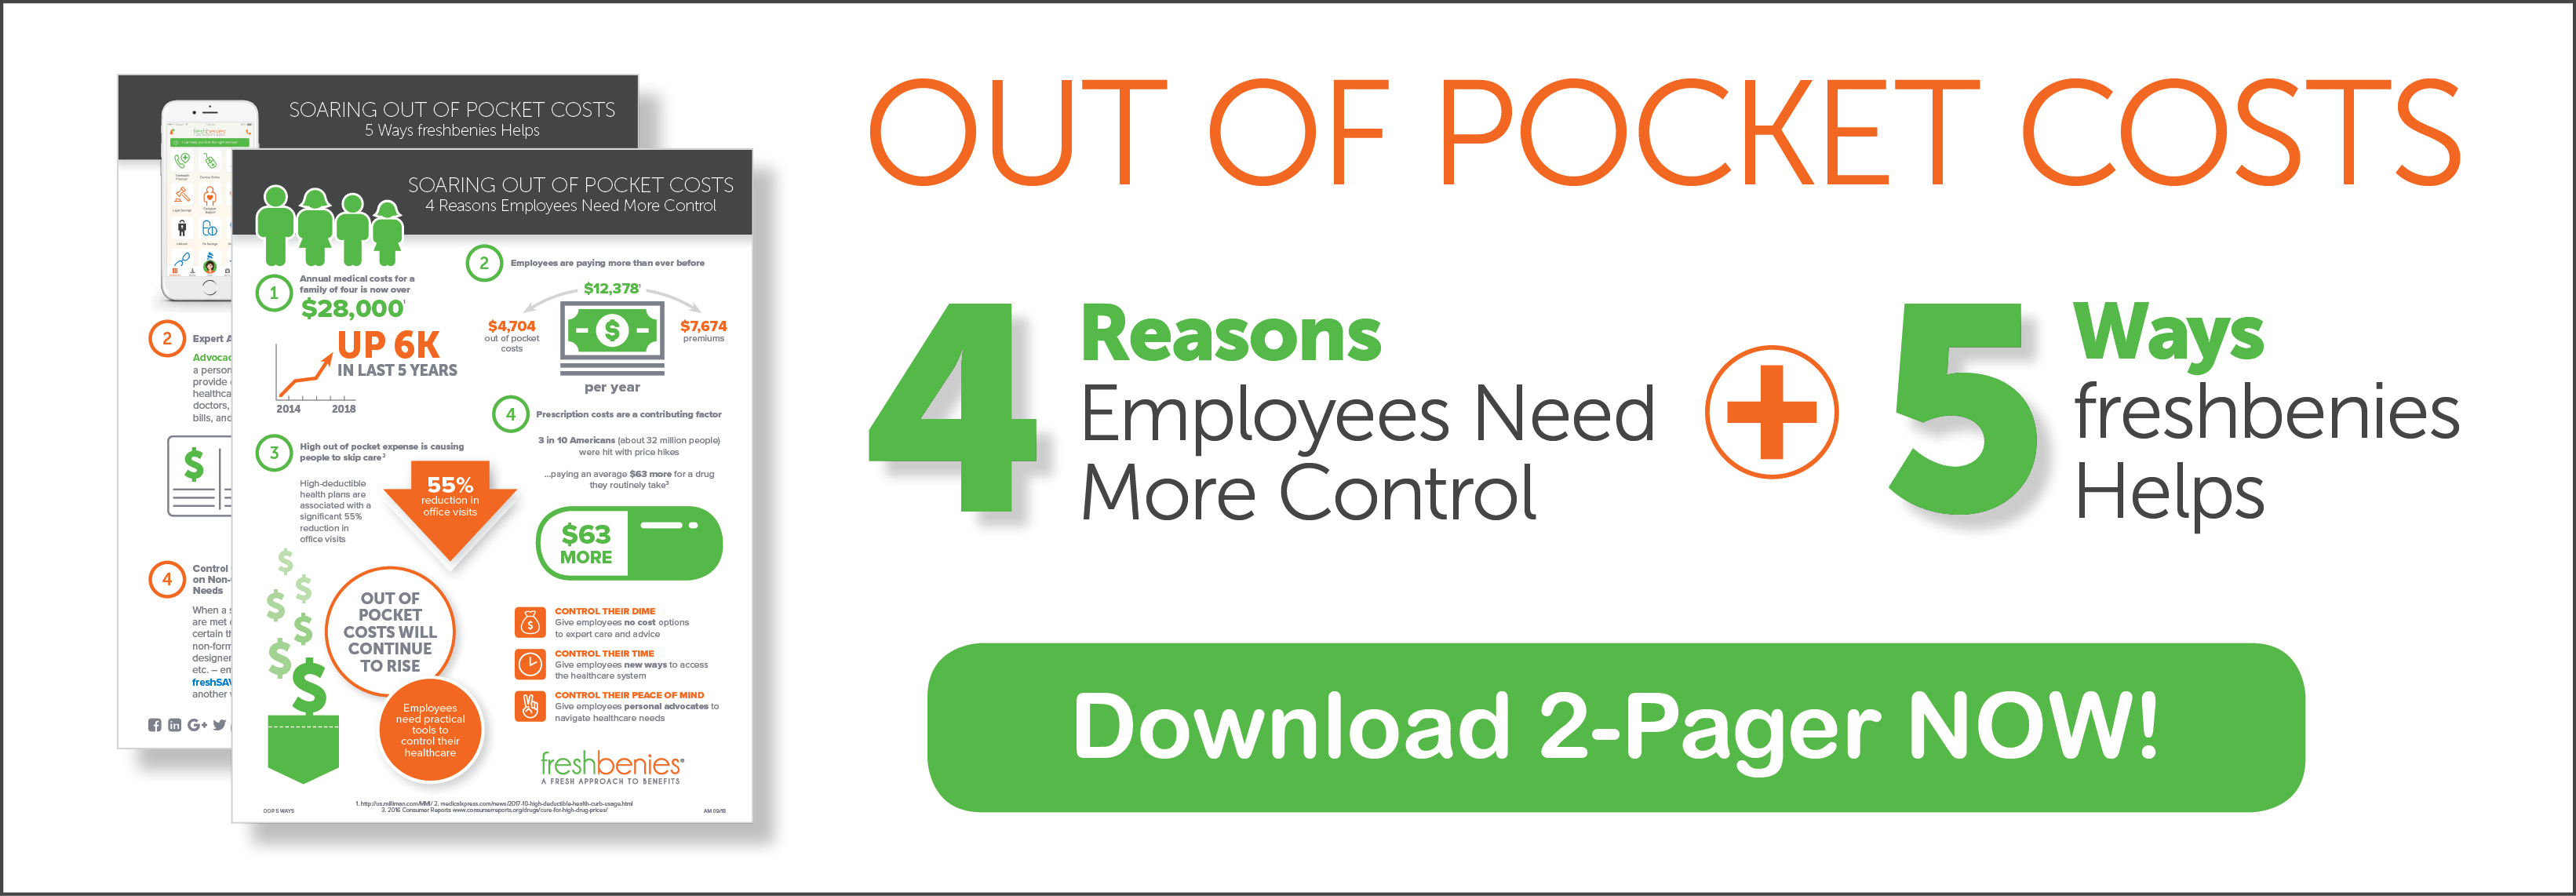 5 Ways freshbenies Helps Employees with Out of Pocket costs